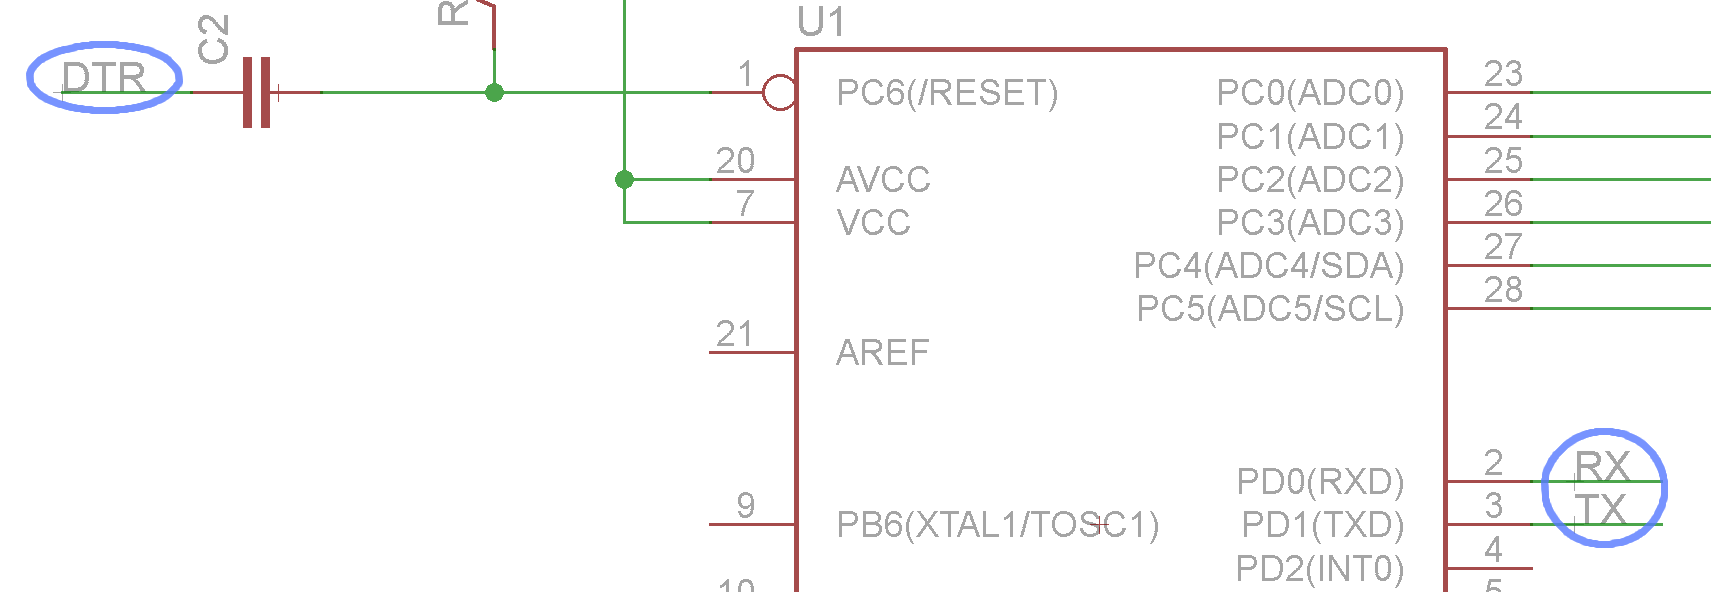 Making Pcbs In Eagle Circuit Symbols The List Above Covers Almost Every Symbol You Will Naming And Labeling Rx Tx Dtr